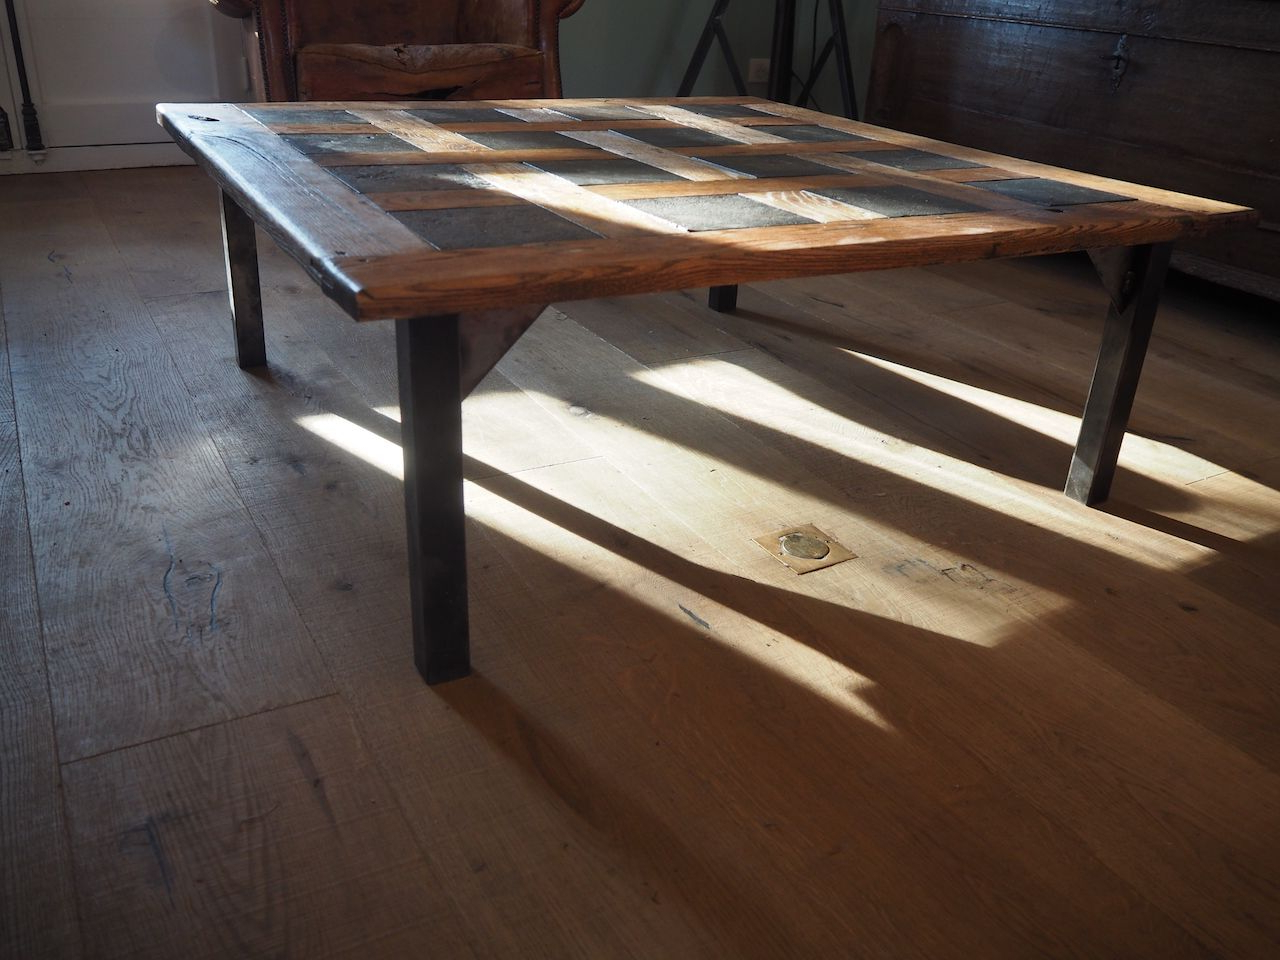 Widely Used Parquet Coffee Tables Regarding Mid Century Parquet Coffee Table, 1950s For Sale At Pamono (View 13 of 20)